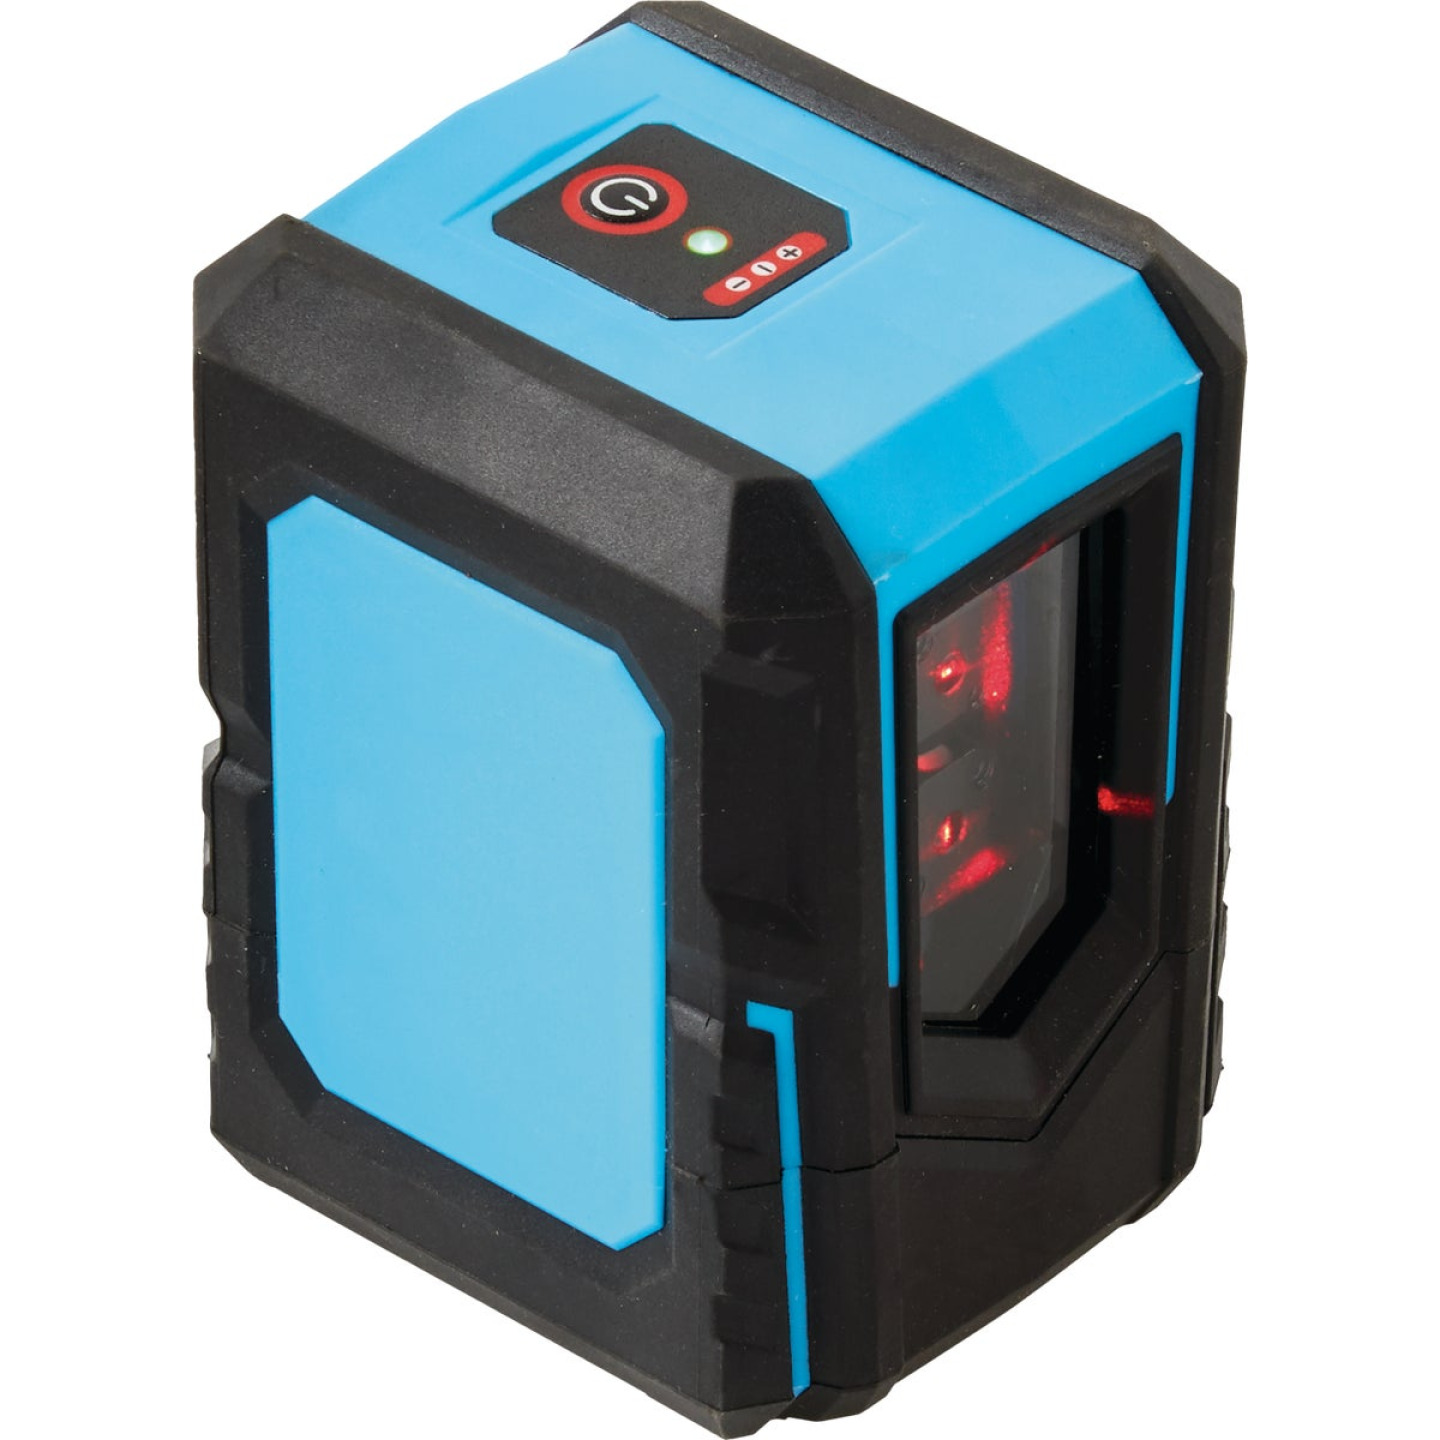 Channellock 30 Ft. Self-Leveling Cross-Line Laser Level Image 2